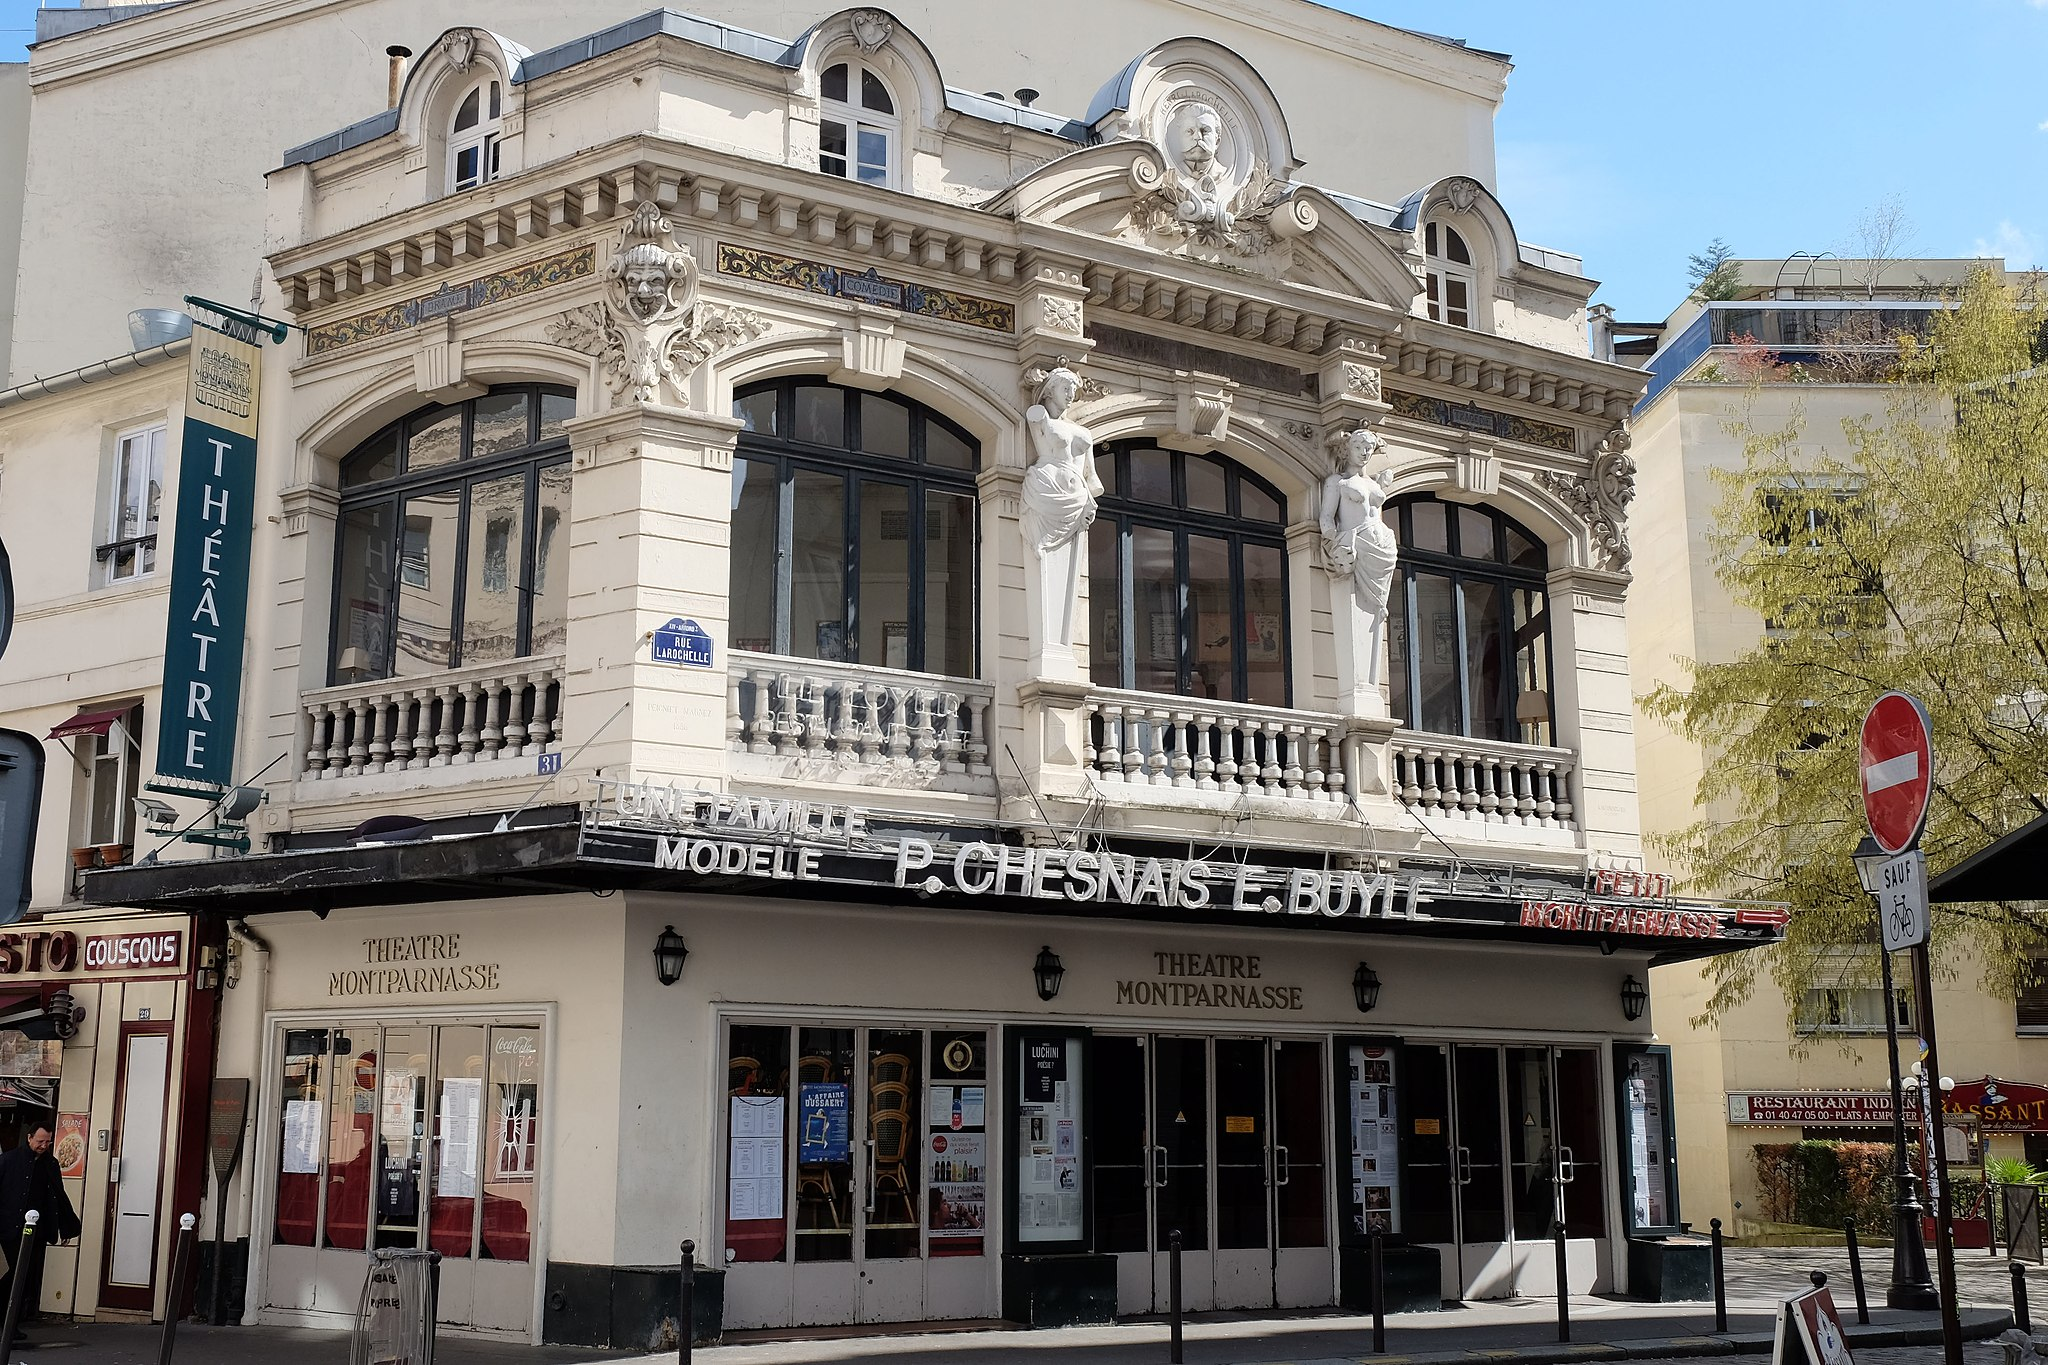 Le Théâtre Montparnasse de Paris (XIVe arrondissement) (c) Papagon (via wikipedia commons)